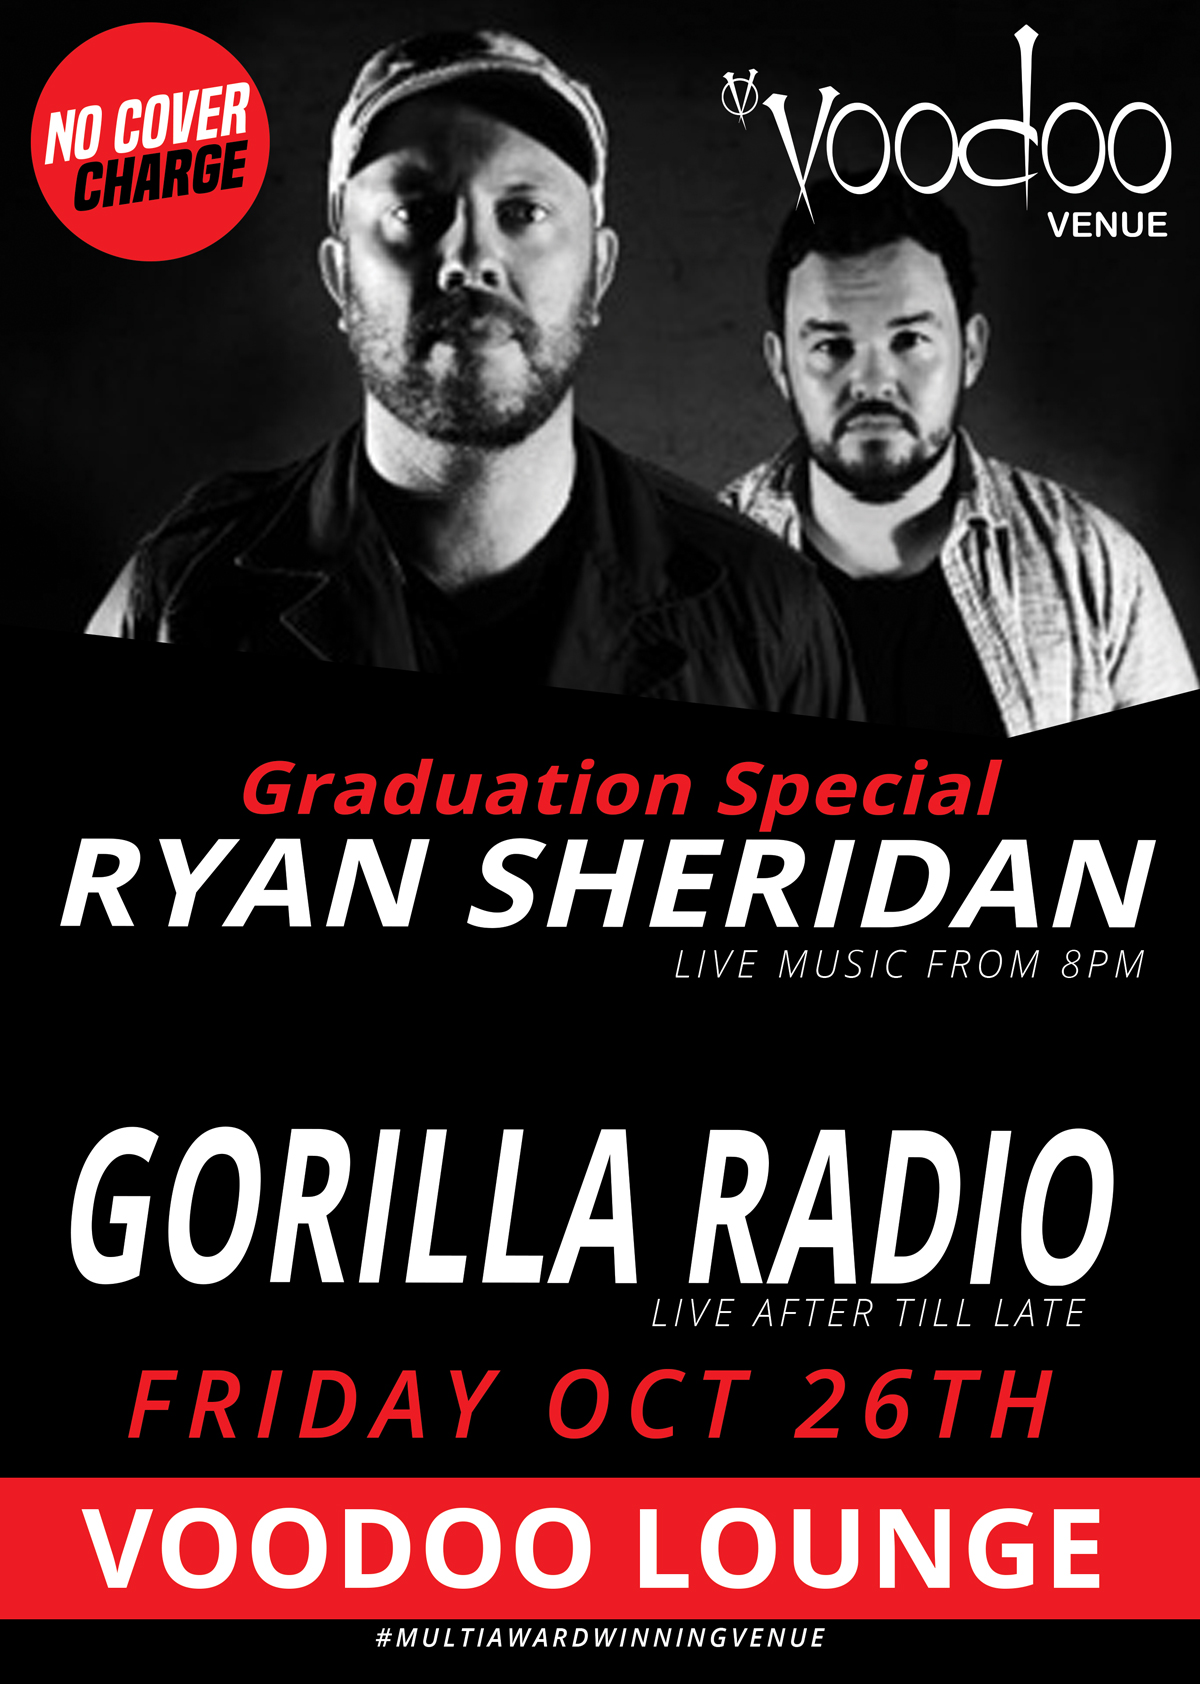 voodoo-venue---live-lounge-RYAN-SHERIDAN--fri-oct-26-2018.jpg